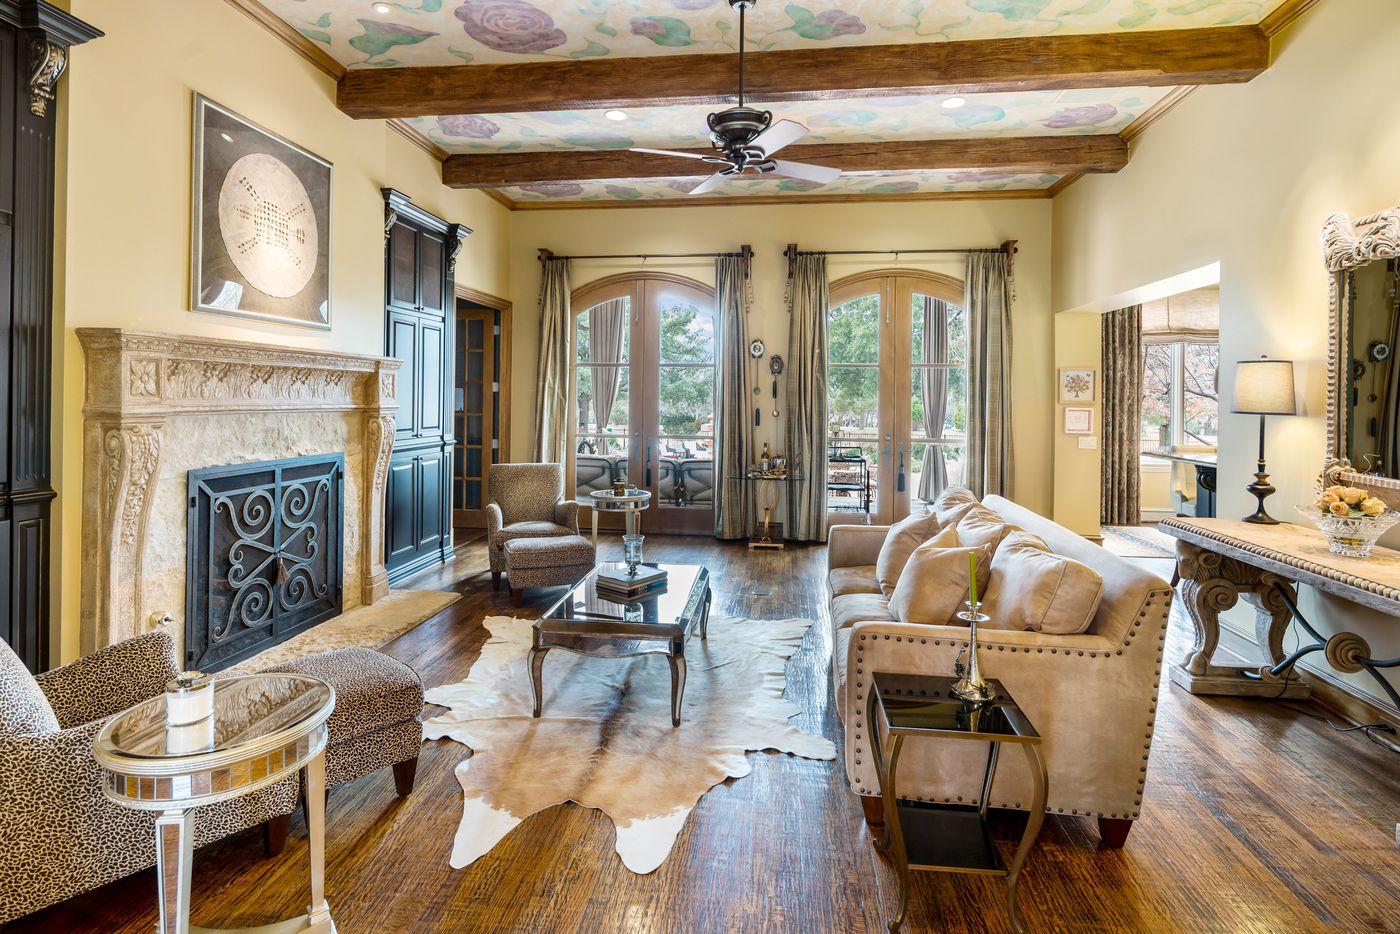 Take a look inside the home at 15 Riva Ridge in Frisco, TX.